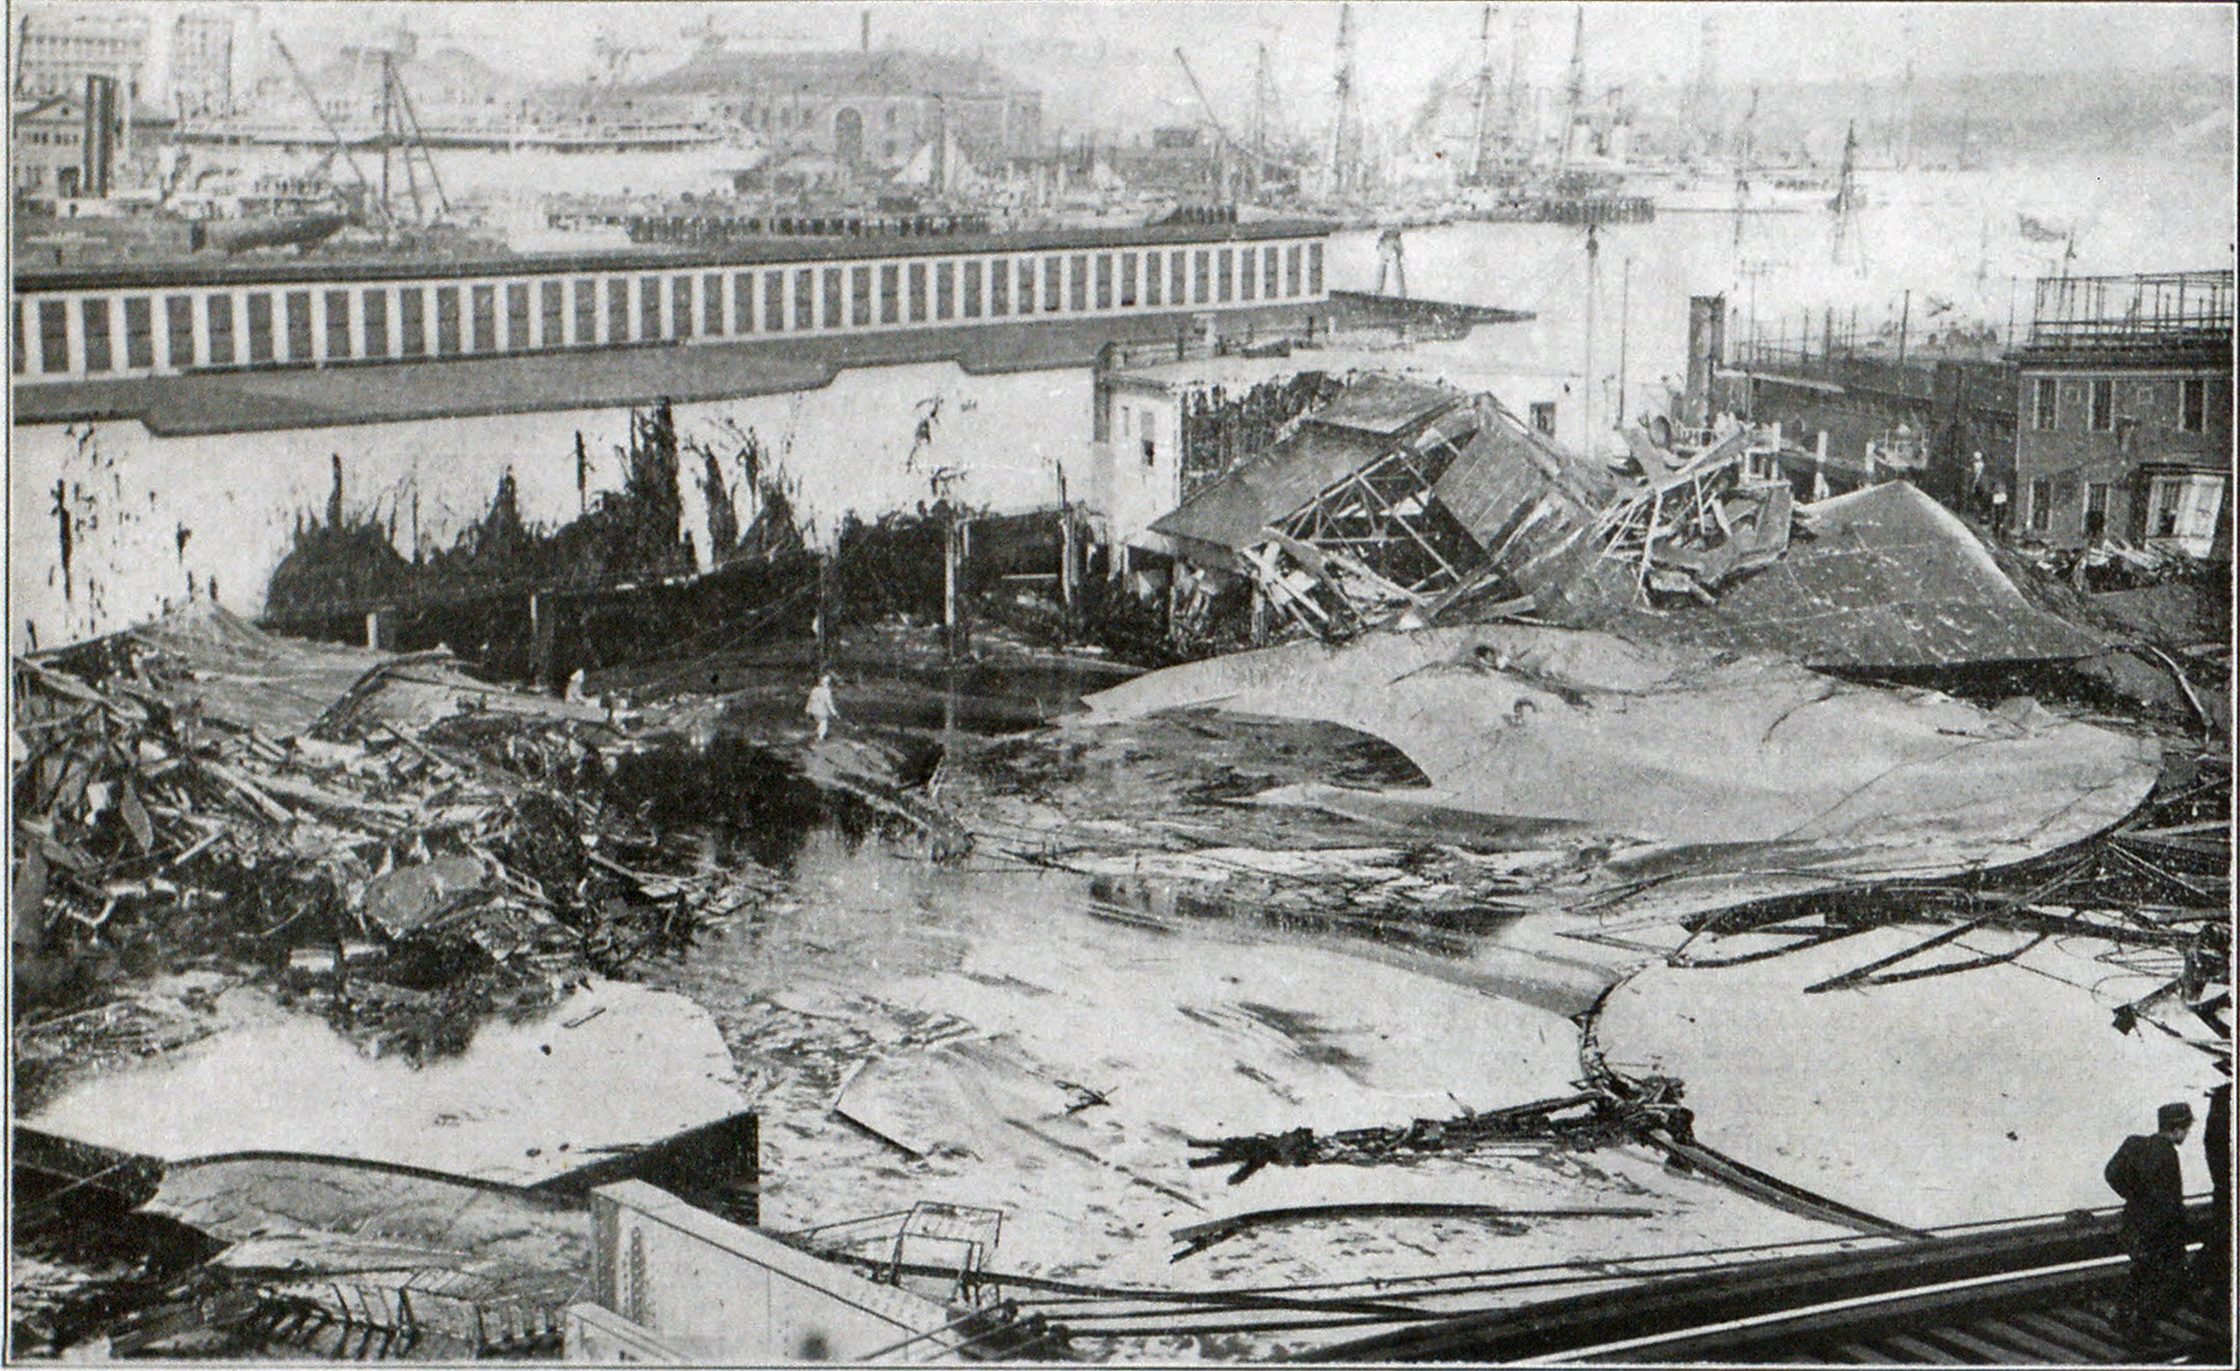 Scene at Explosion of Molasses Tank at Boston, Showing Destruction Caused, and Sticky Mass Covering Everything